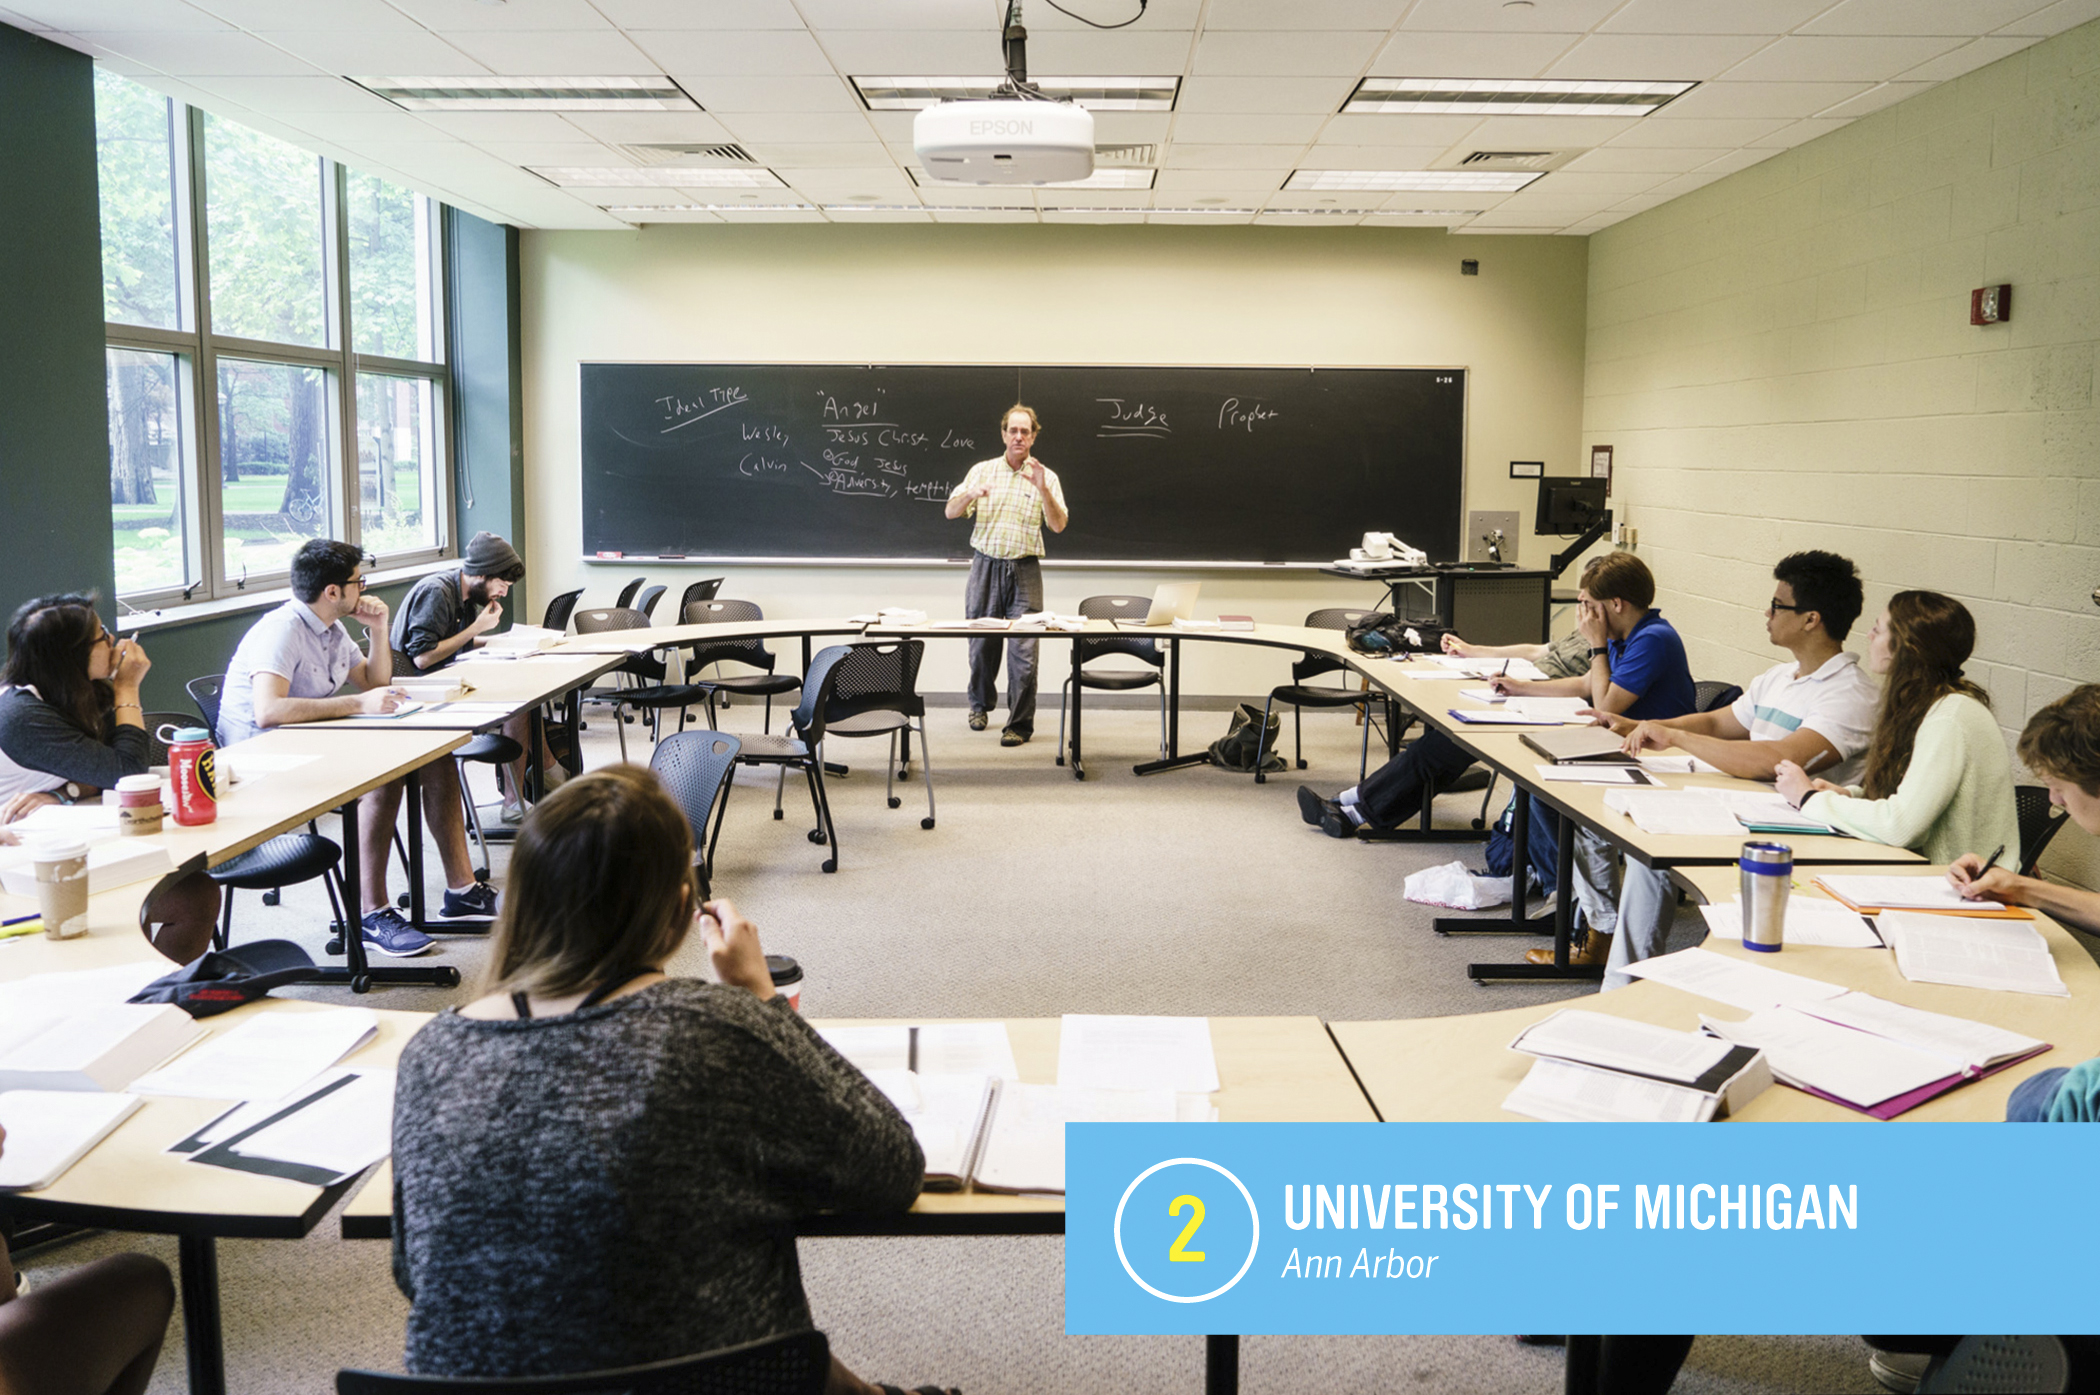 """The <a href=""""https://money.com/best-colleges/profile/university-of-michigan-ann-arbor/"""" target=""""_blank"""">University of Michigan</a> accepts less than a third of the nearly 50,000 students who apply, and is nearly as popular with out-of-staters as with Michiganders. State residents who get in enjoy an especially good deal: Michigan is one of 11 colleges in Money's top 50 where the average in-state cost of a degree is less than $100,000. <a href=""""https://money.com/best-colleges/profile/university-of-michigan-ann-arbor/"""" target=""""_blank"""">FULL PROFILE</a>"""